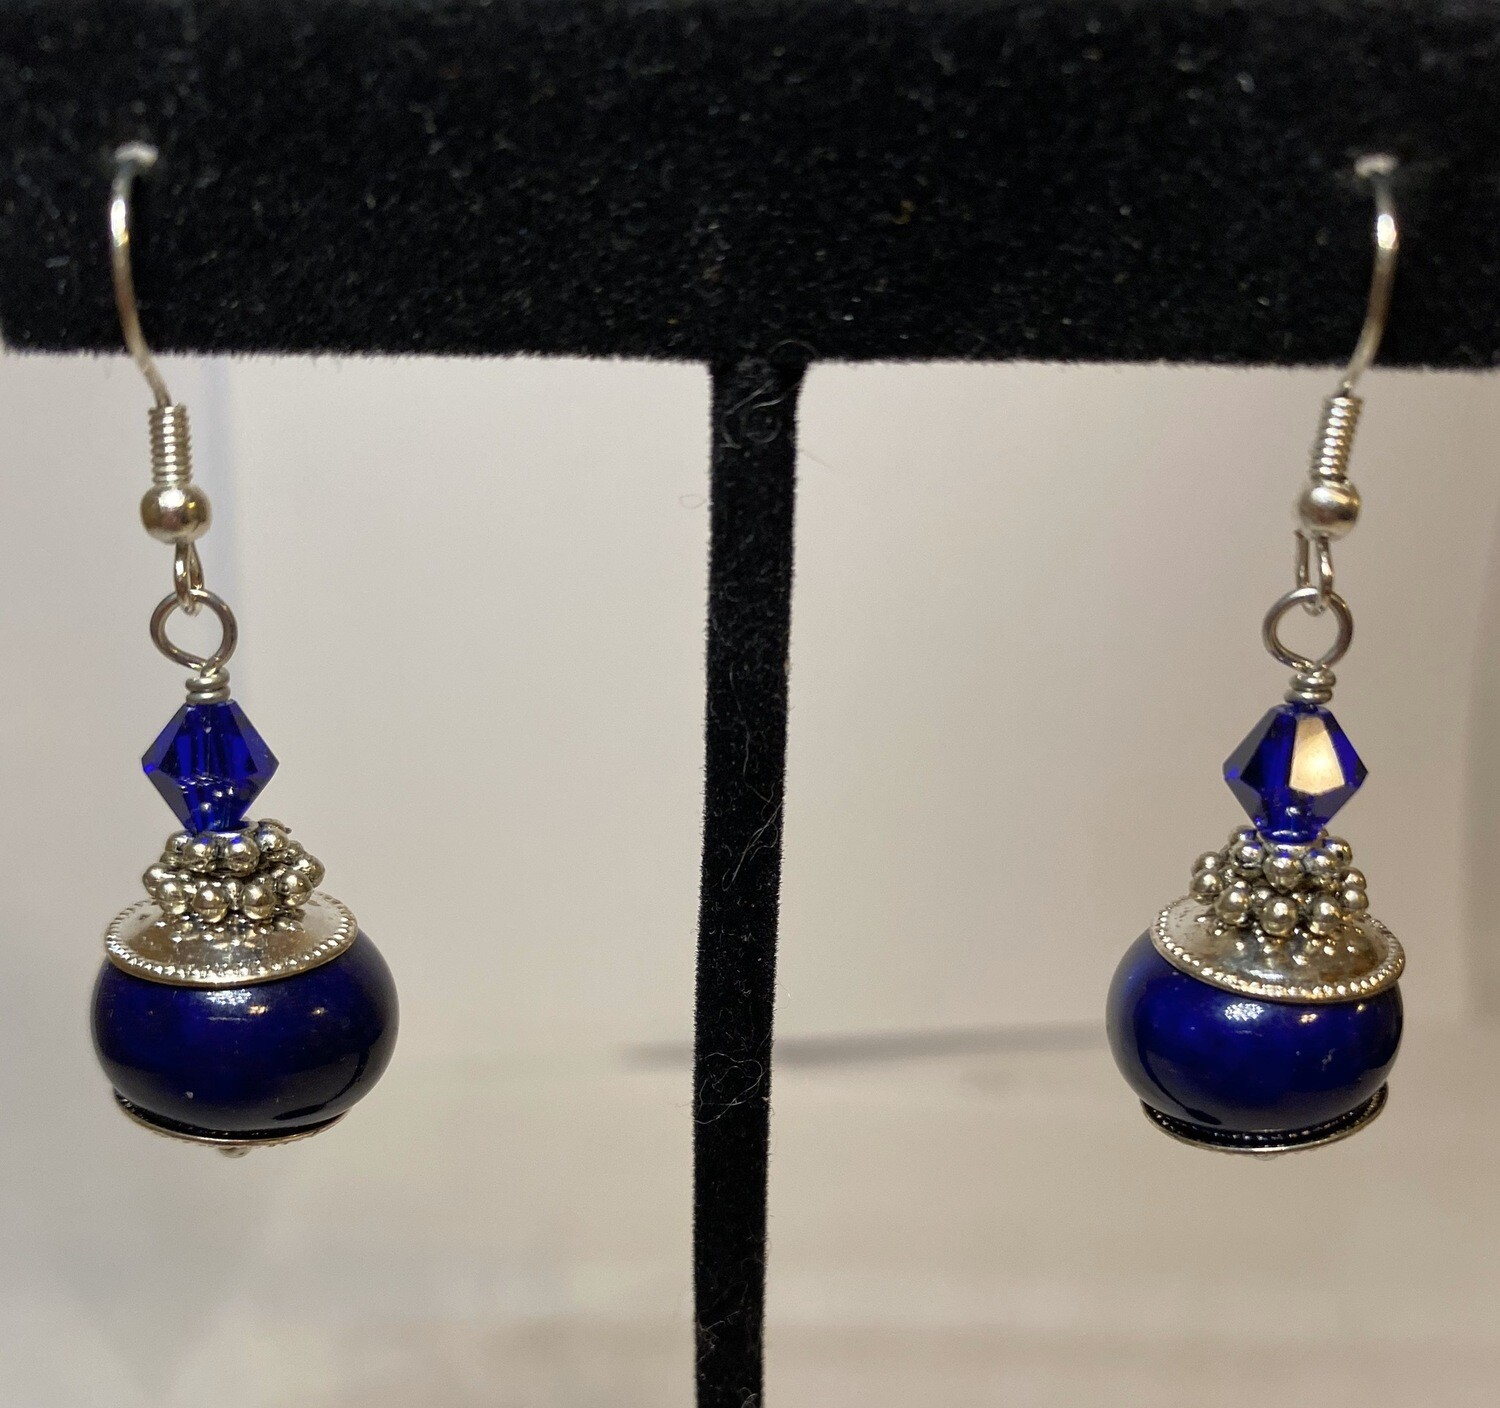 DK Royal Blue Glass With Crystal Earring